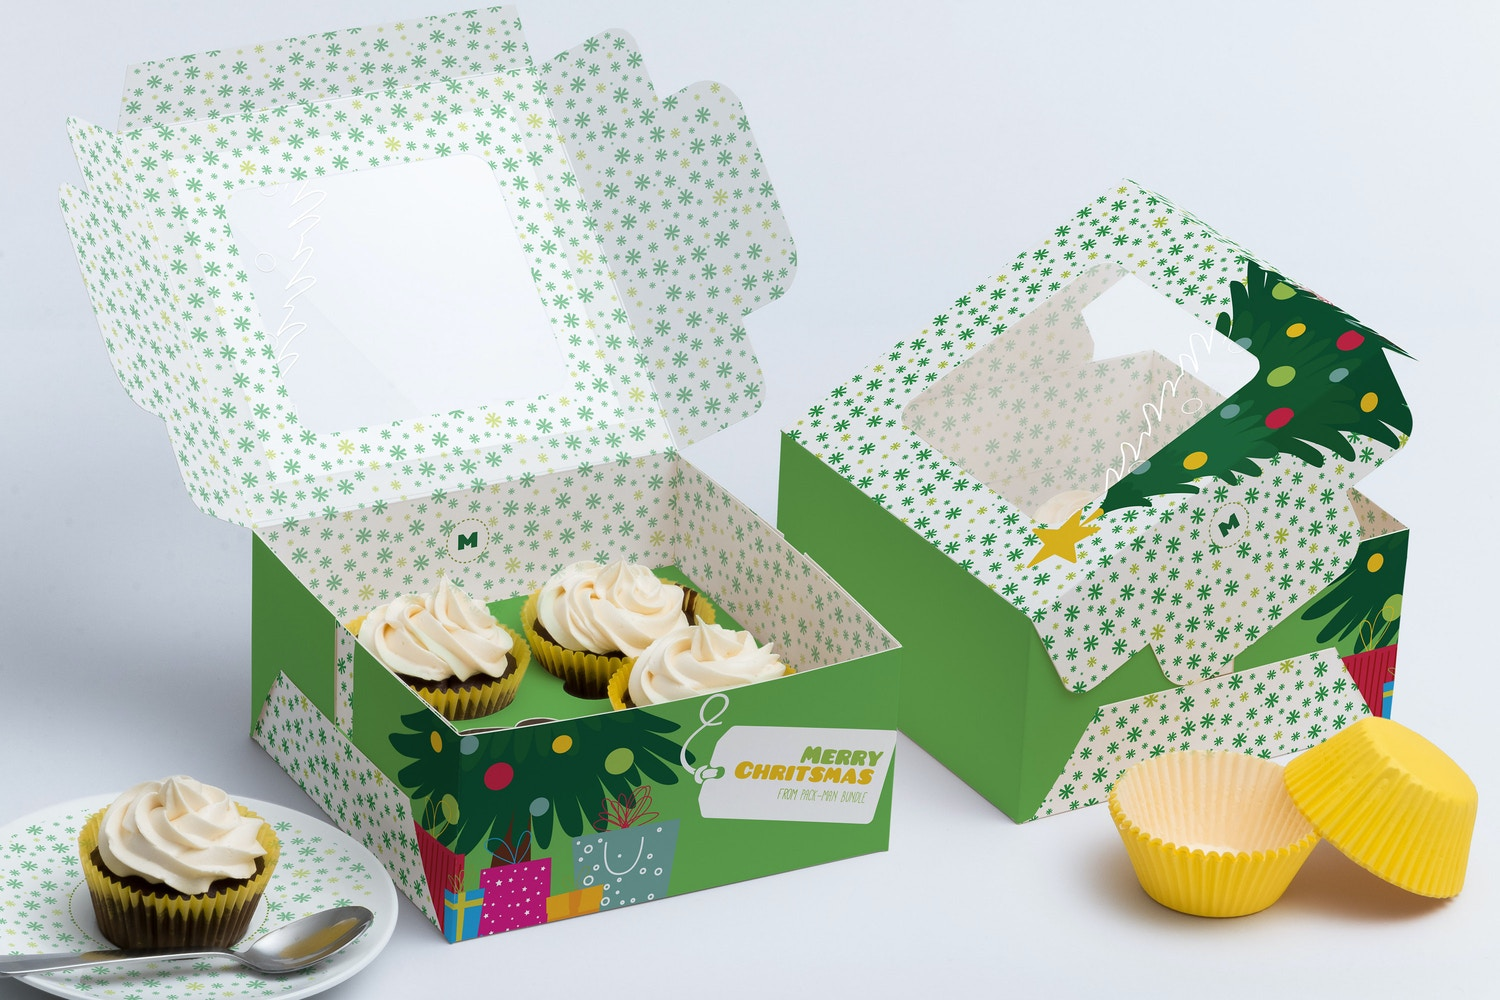 Four Cupcake Box Mockup 01 by Ktyellow  on Original Mockups